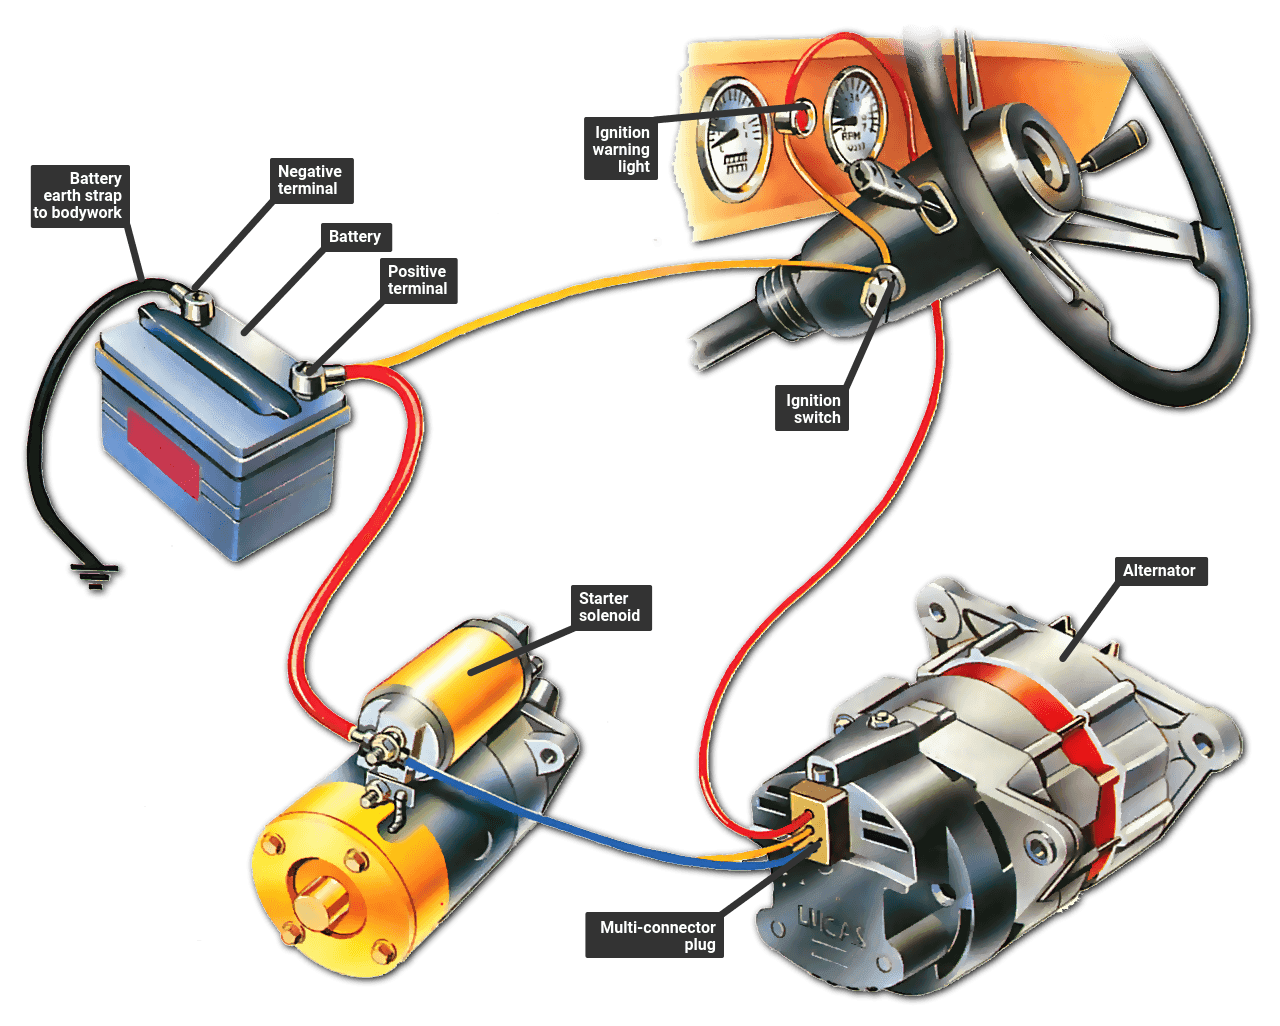 Troubleshooting The Ignition Warning Light How A Car Works 04 Chevy Silverado 3 Wire Alternator Diagram